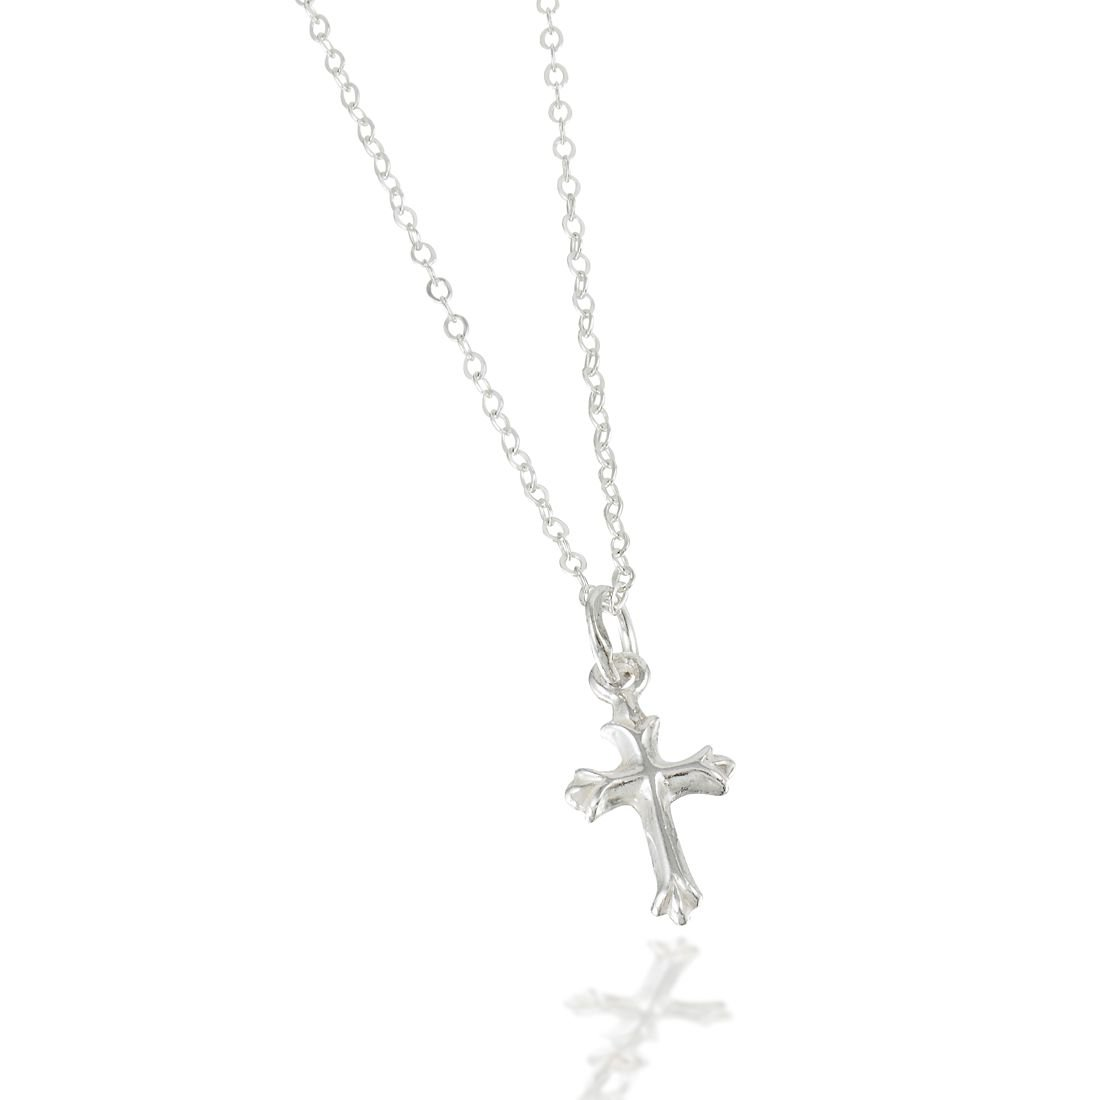 """Beloved Child Goods Sterling Silver Cross Necklace with Chain for Babies (12"""") & Girls (14"""") Makes an Ideal Baby Shower, Baptism or Christening, Welcome New Baby and Will be a Treasured Heirloom. CrossC12bag"""